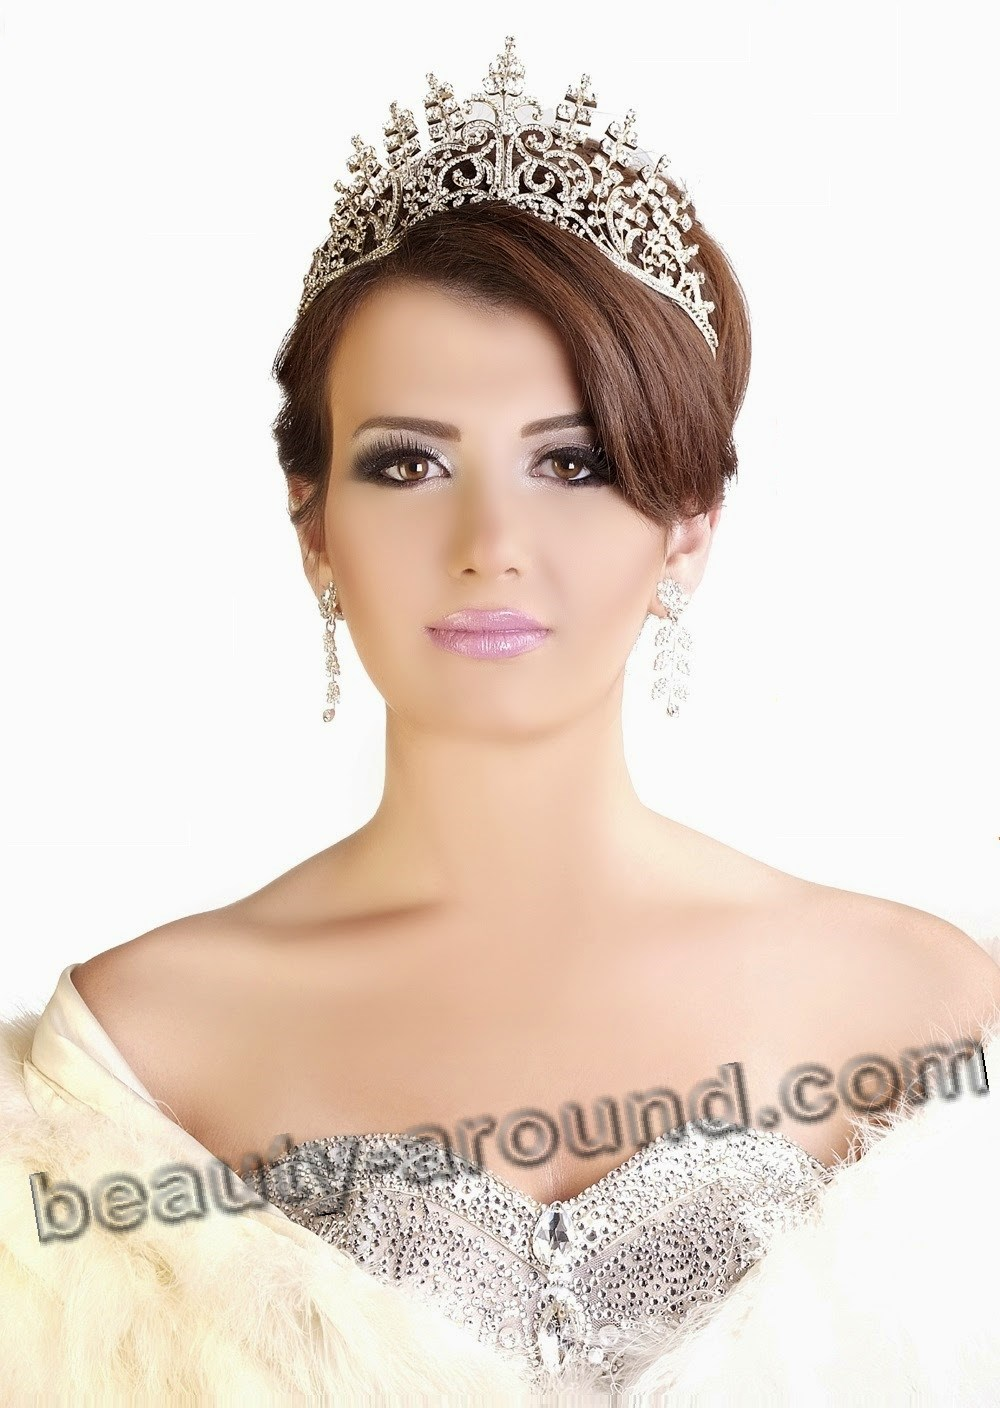 Beautiful Egyptian Women Yara Naoum Miss Egypt 2008 photo